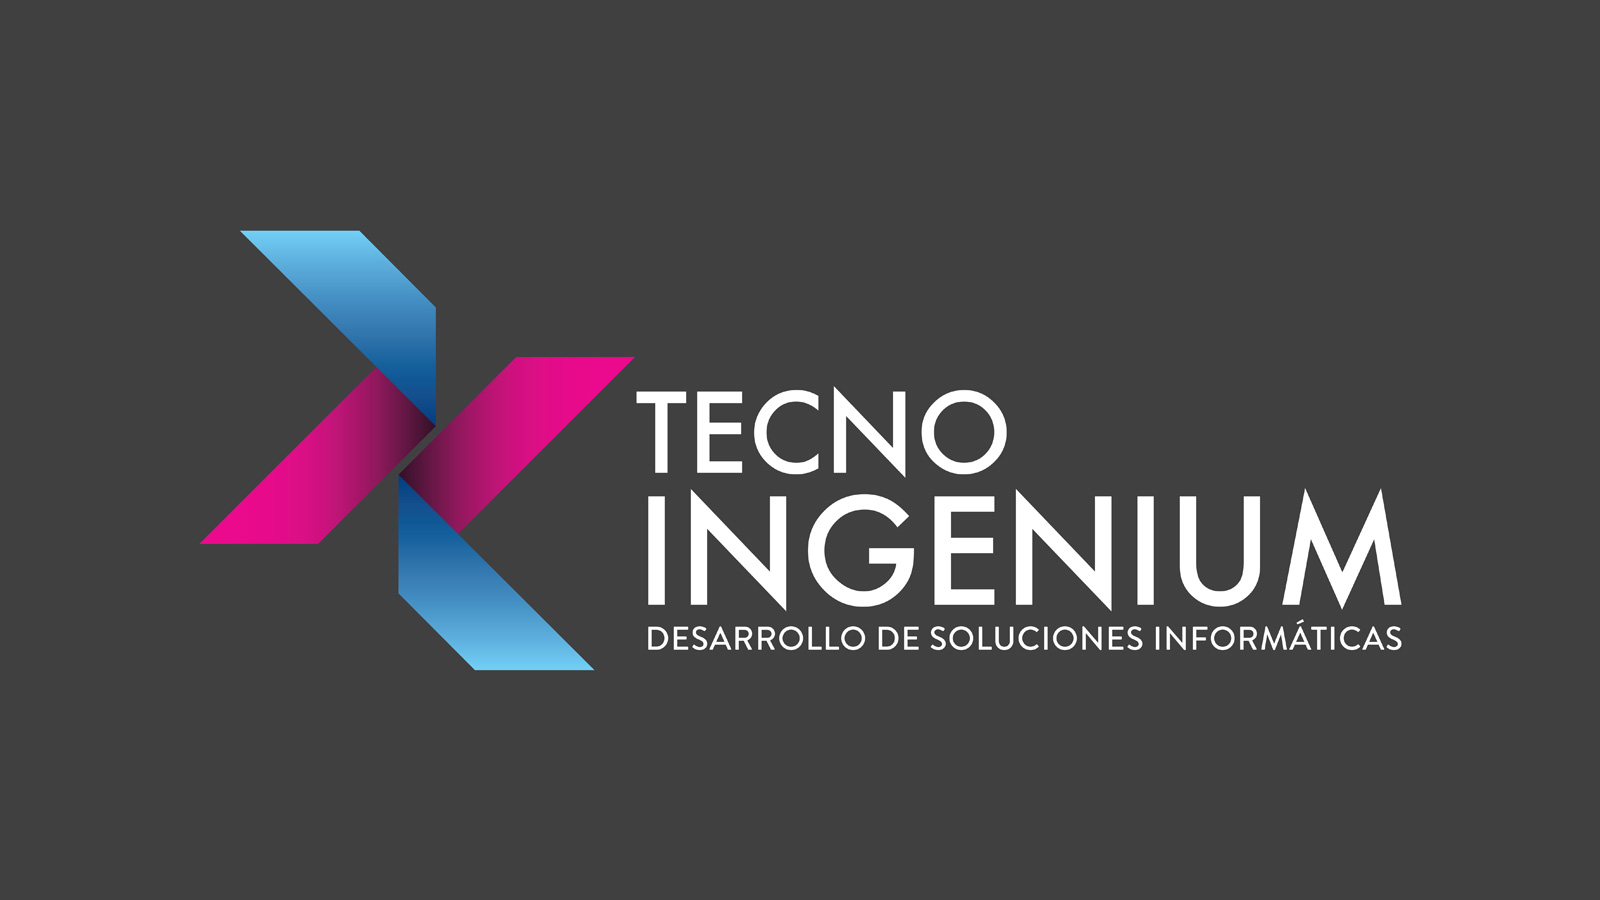 sublime-digital_branding_tecnoingenium-04